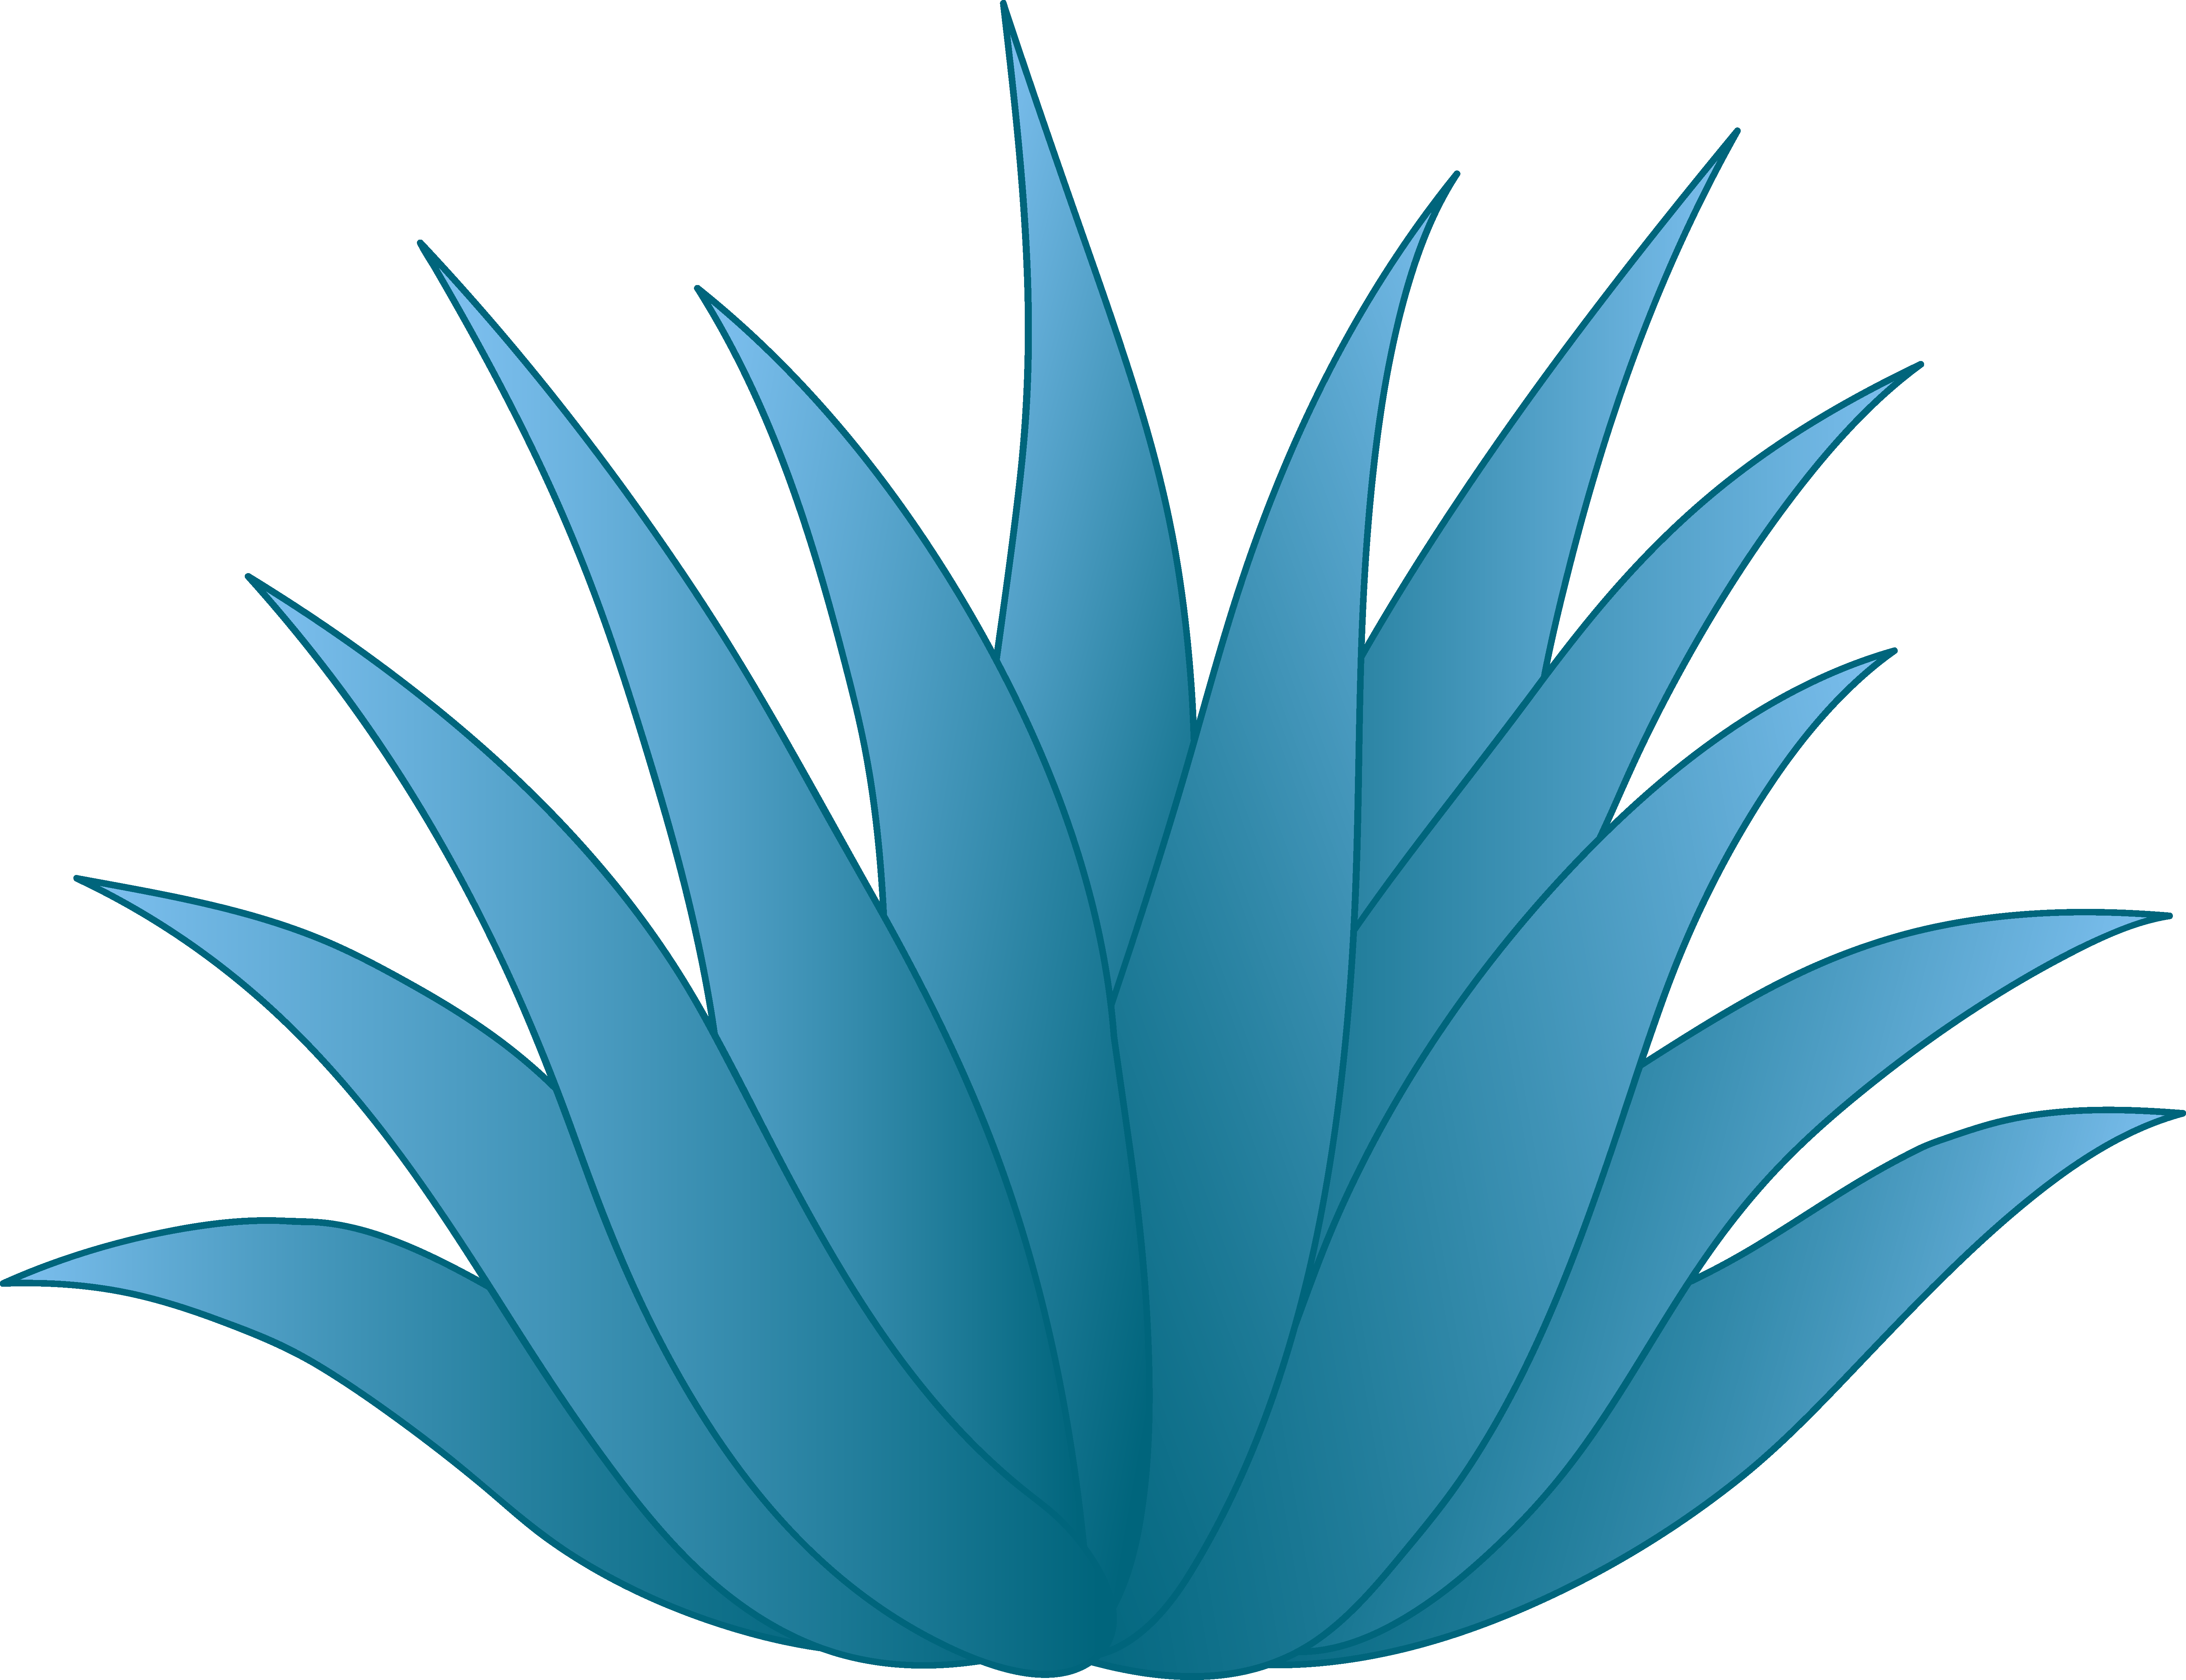 Agave plant png. Clipart